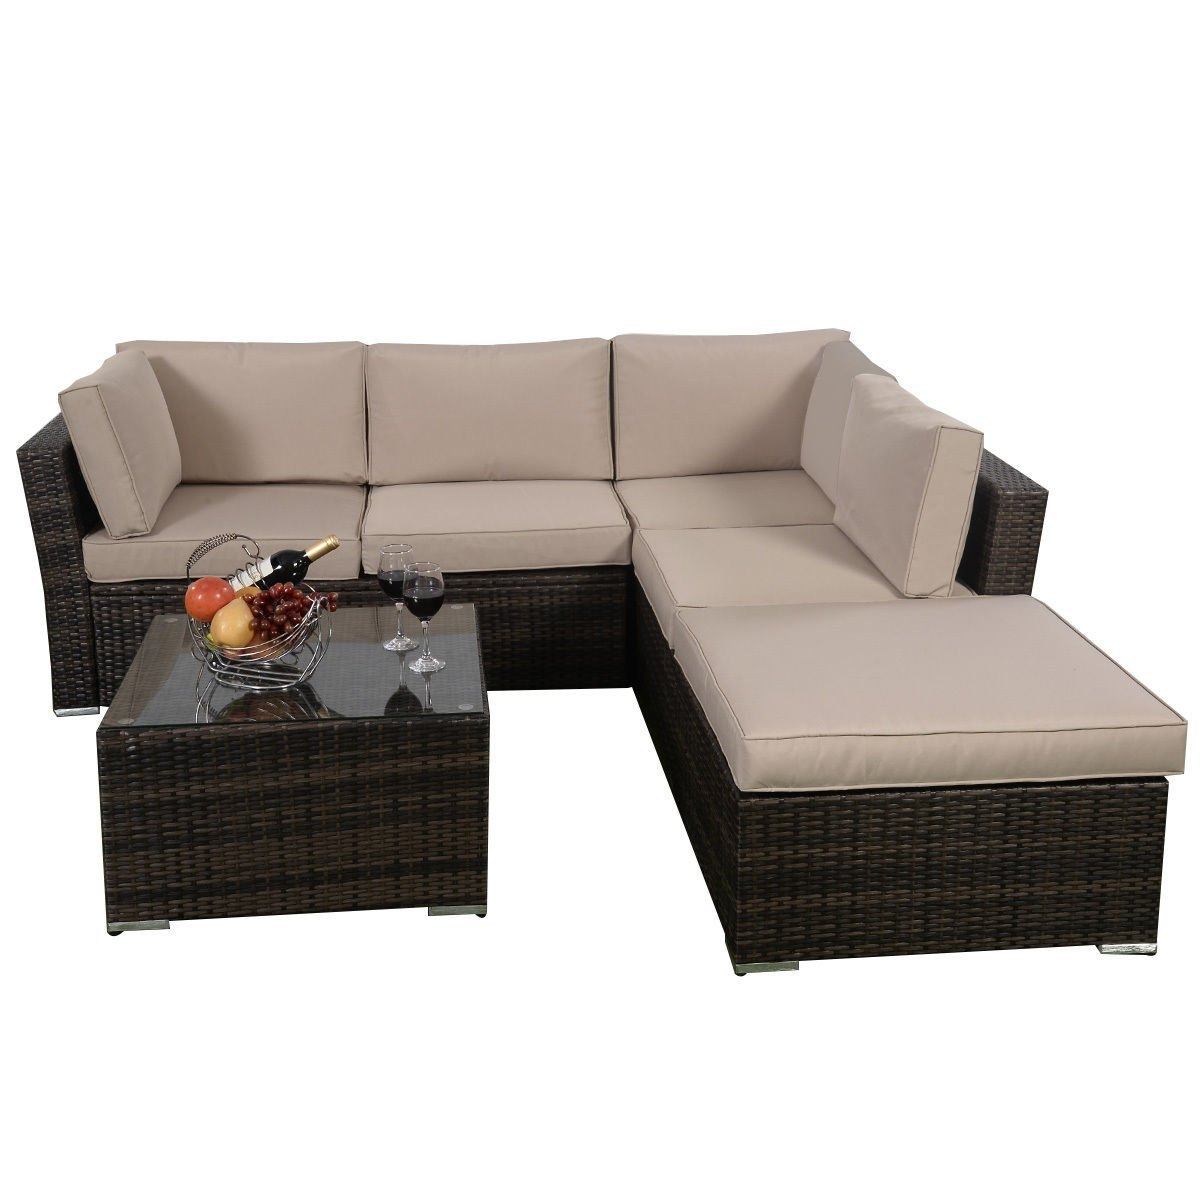 Patio Sofas Amazon With 10 Piece Sectional Sofa (Image 9 of 15)